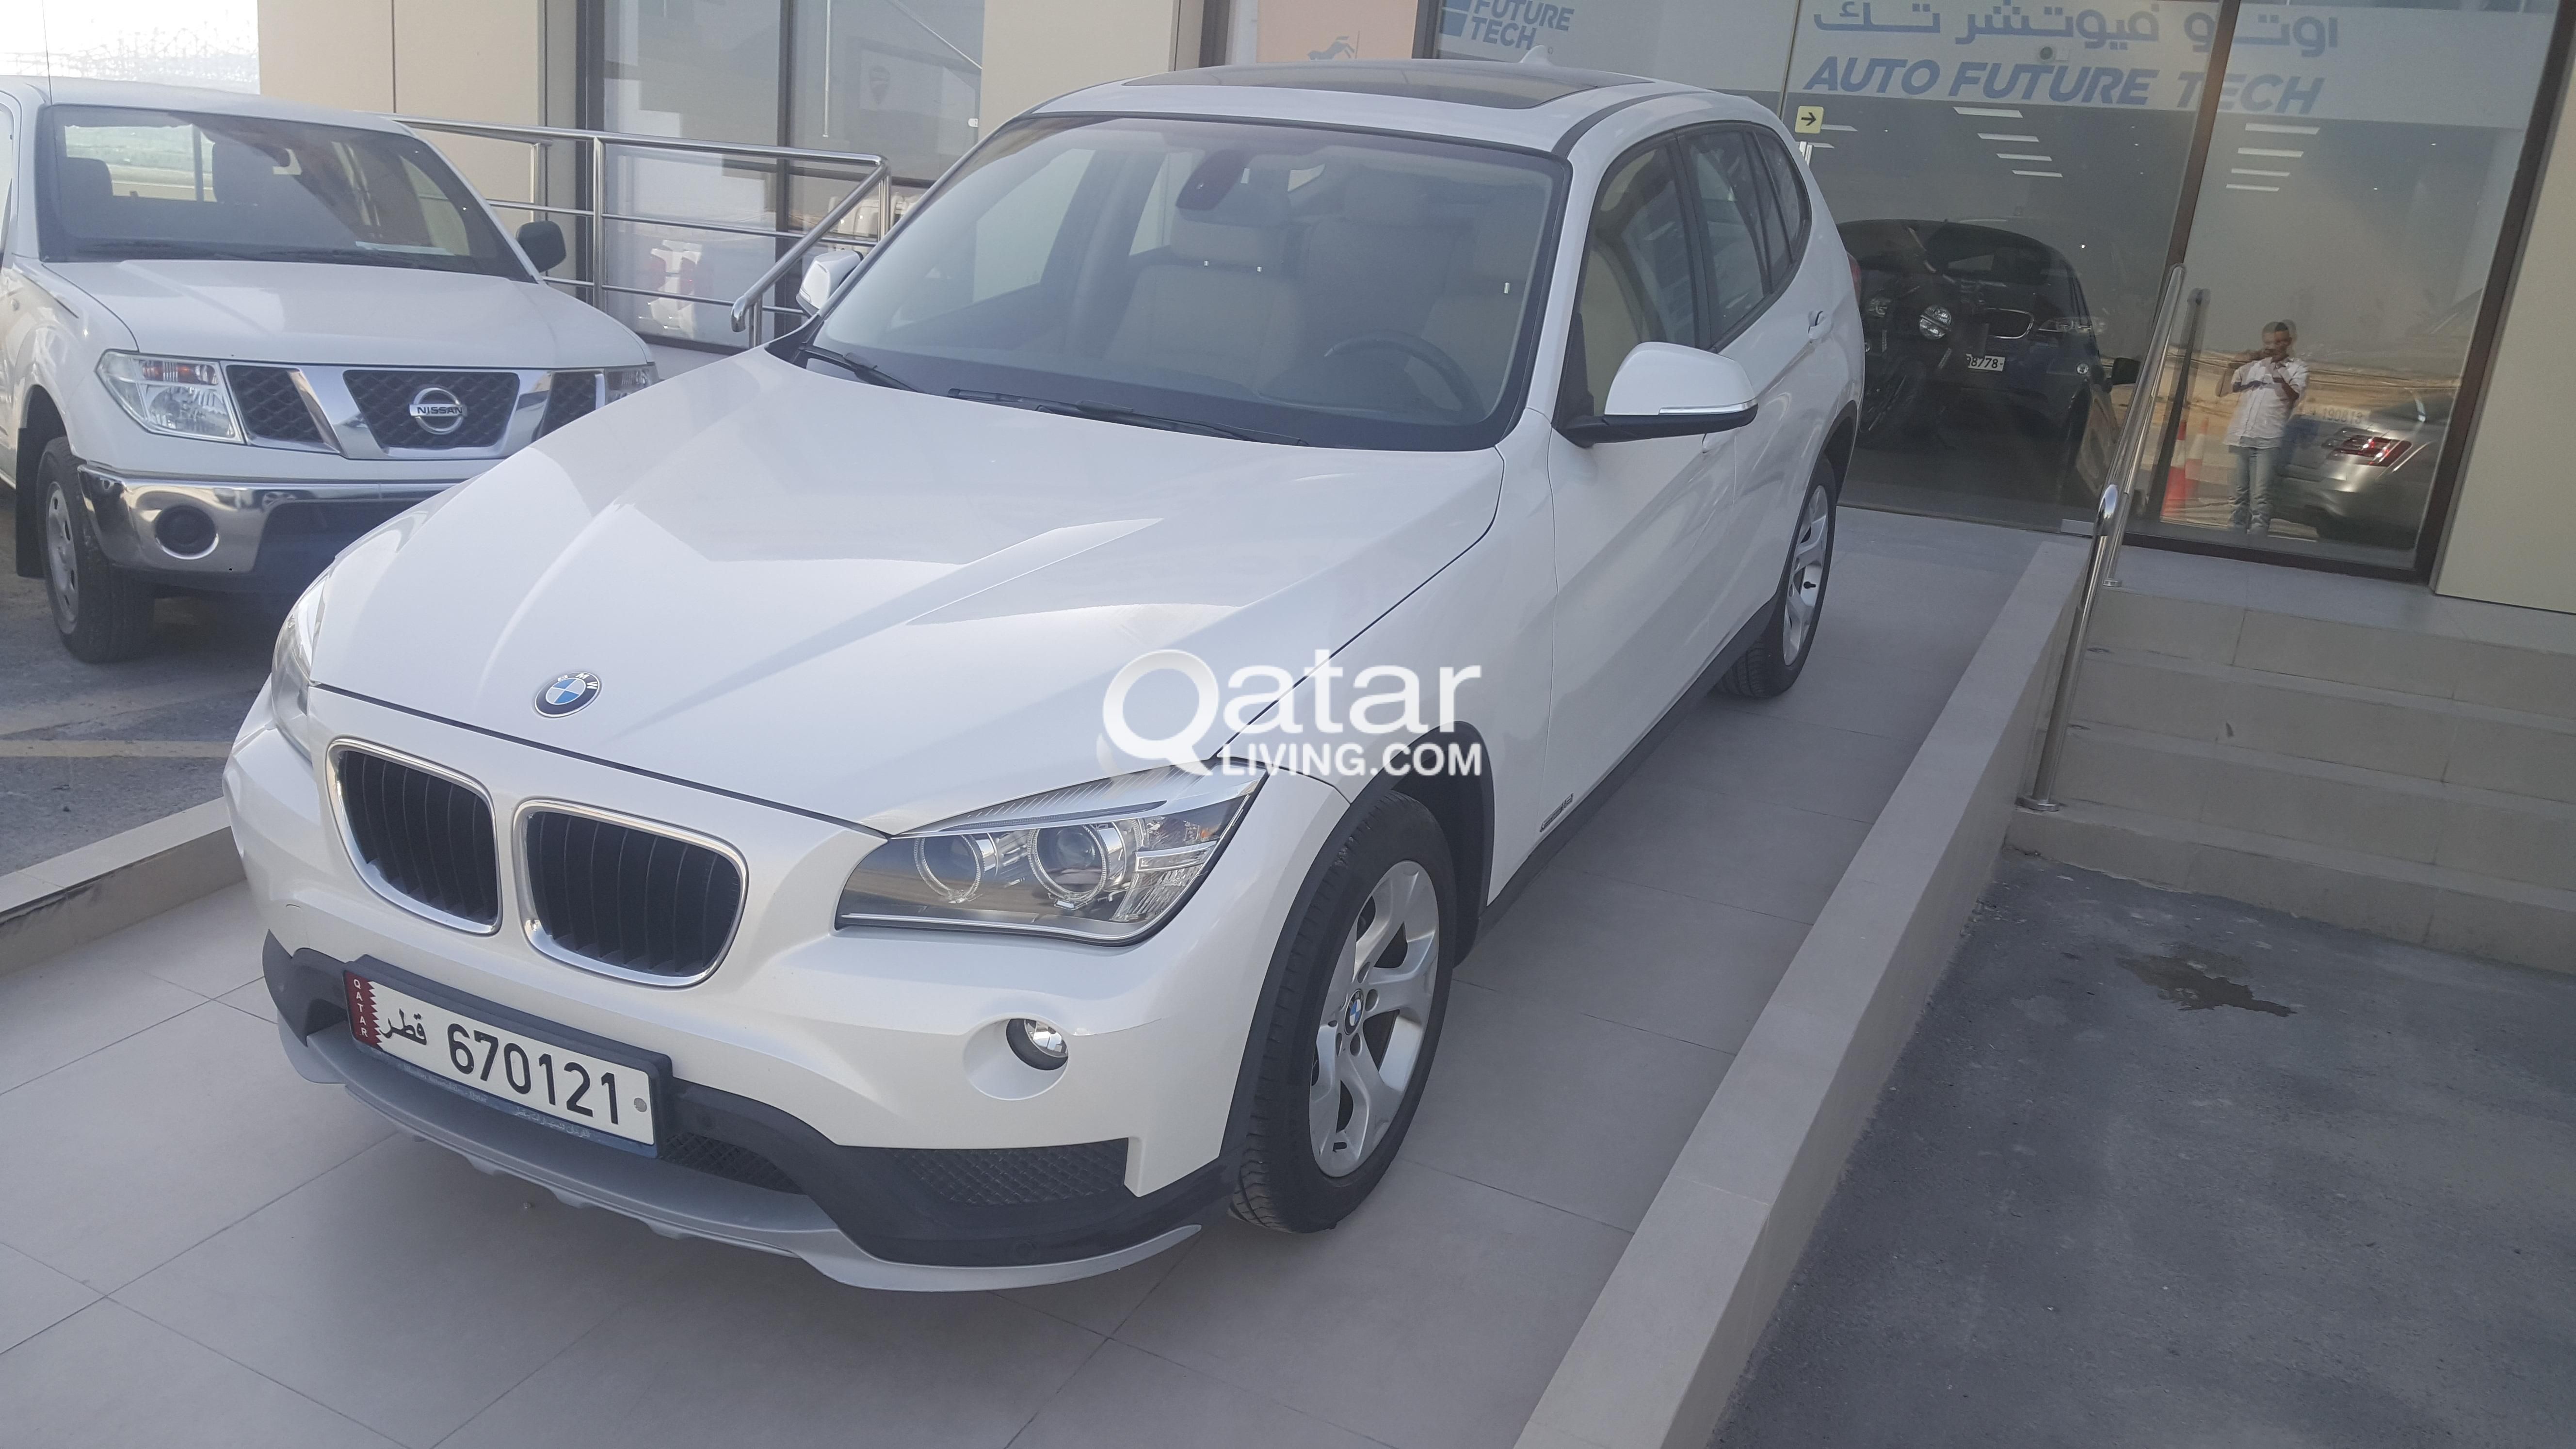 schnitzer photo automotive en vehicle family luxury wheel bmw sports crossover land make personal bumper netcar wallpaper netcarshow model series on images based executive exterior car design ac automobile suv